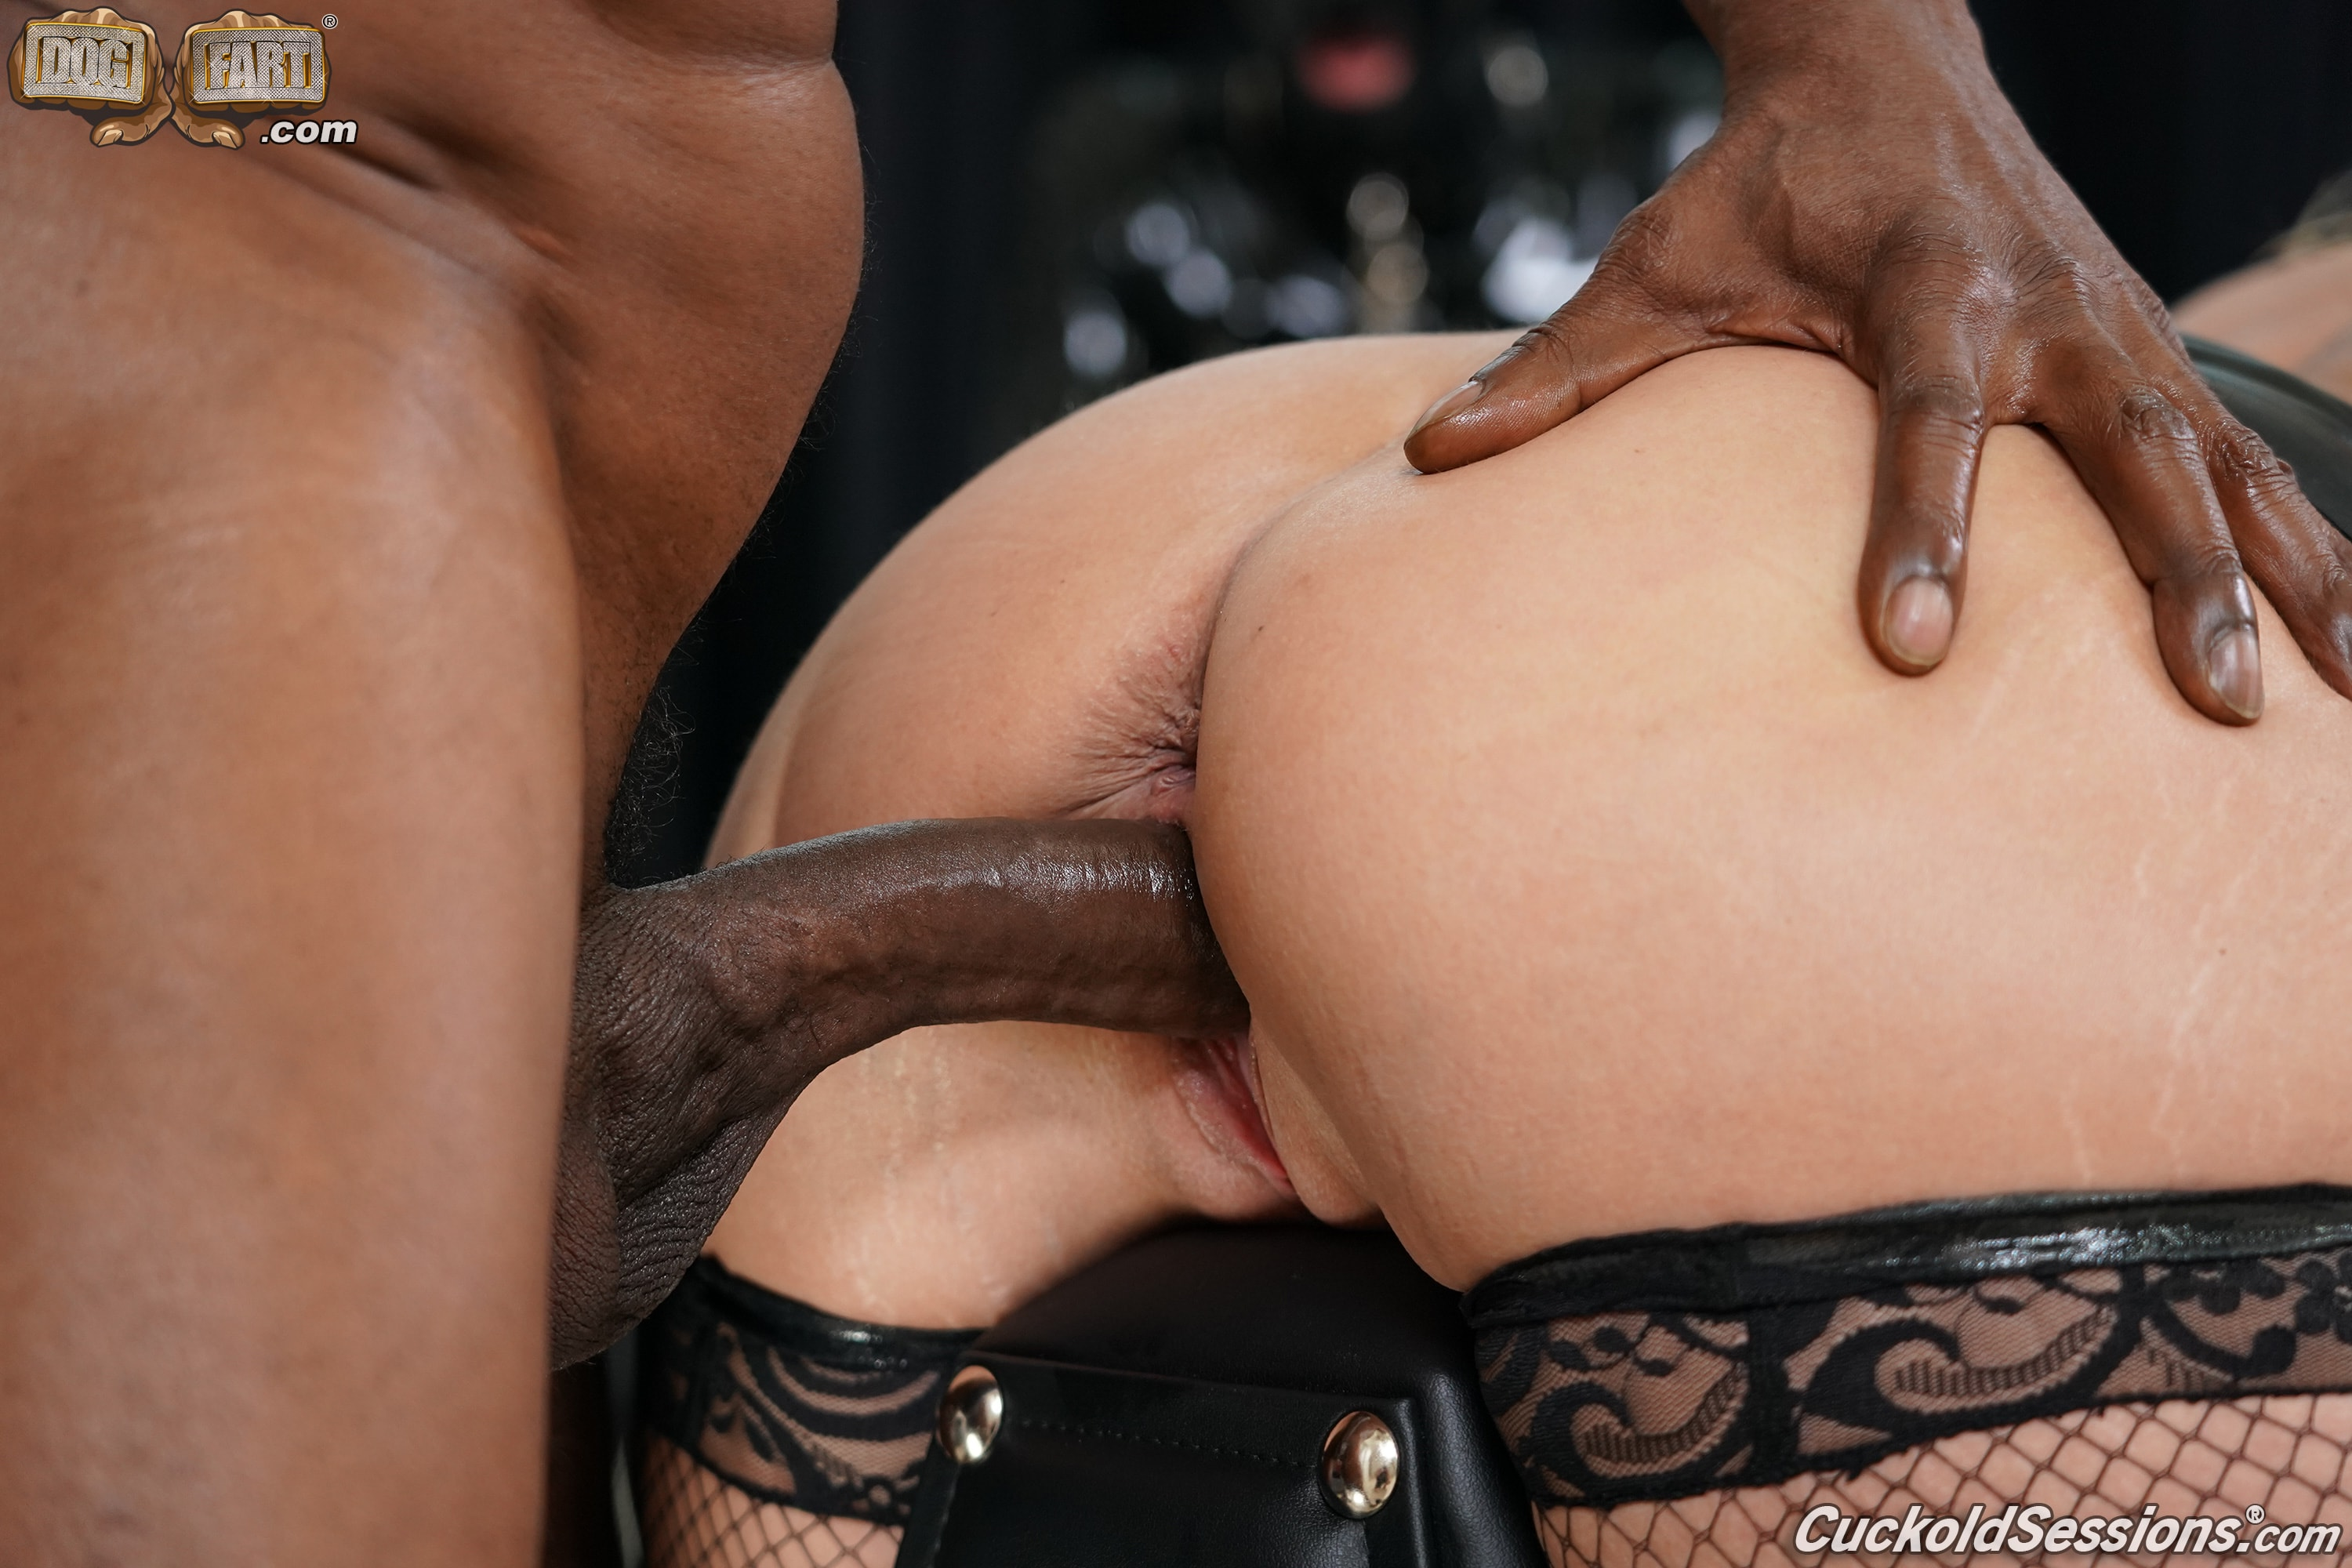 Dogfart '- Cuckold Sessions - Scene 4' starring Brooklyn Chase (Photo 21)